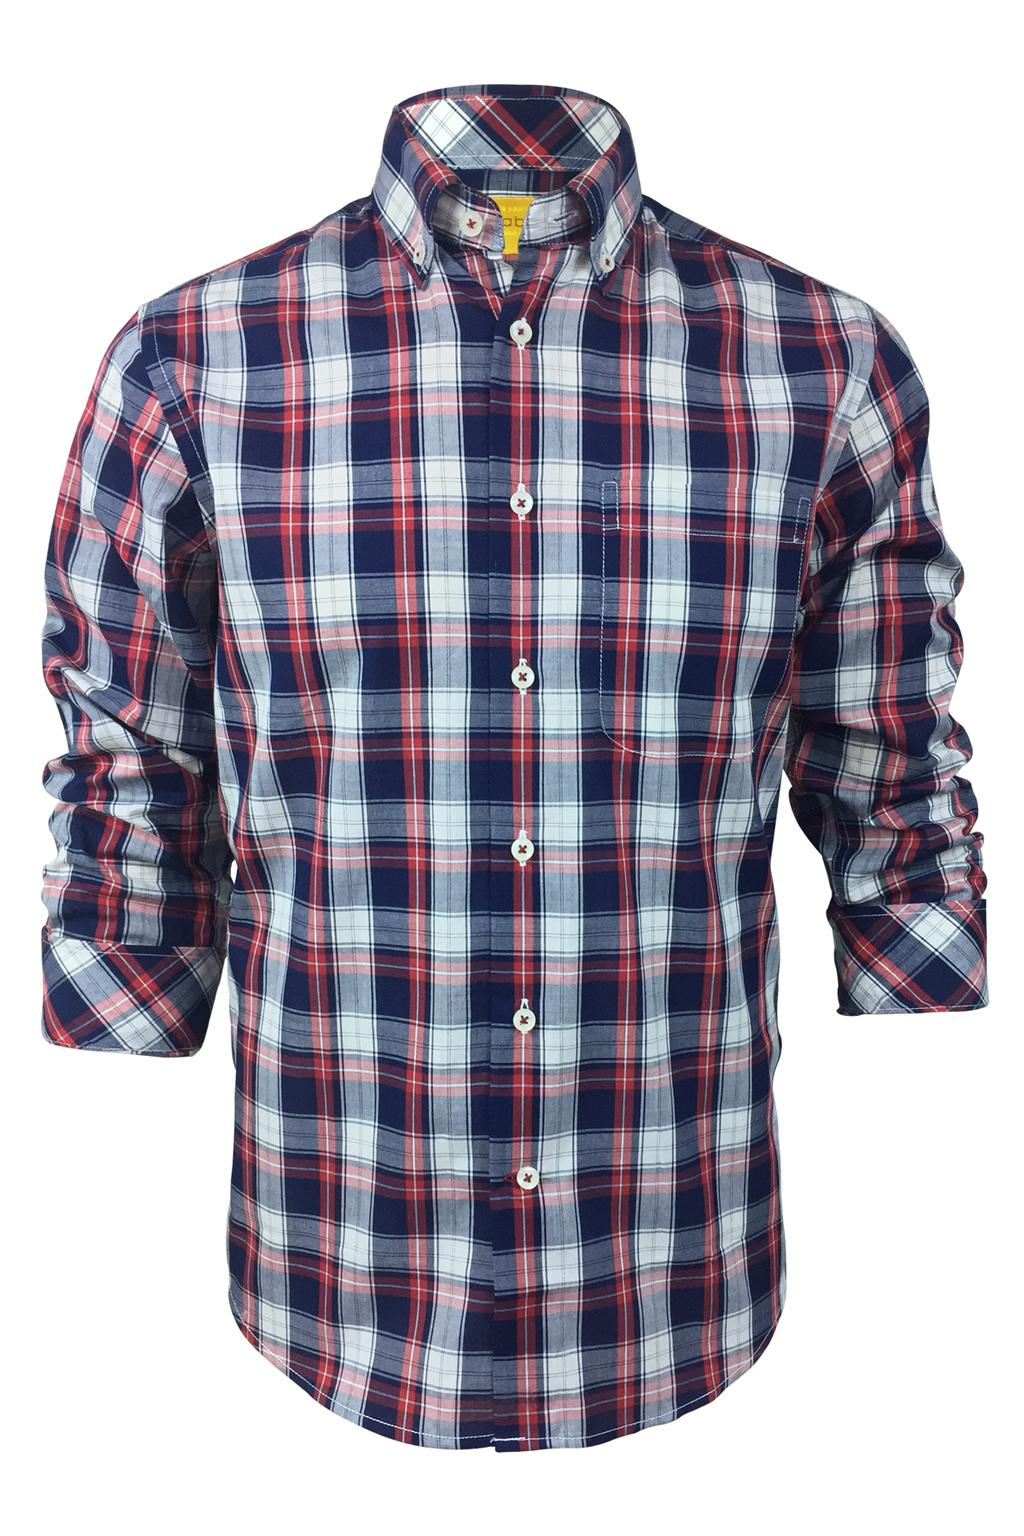 Able Men's Long Sleeve Shirt - Check